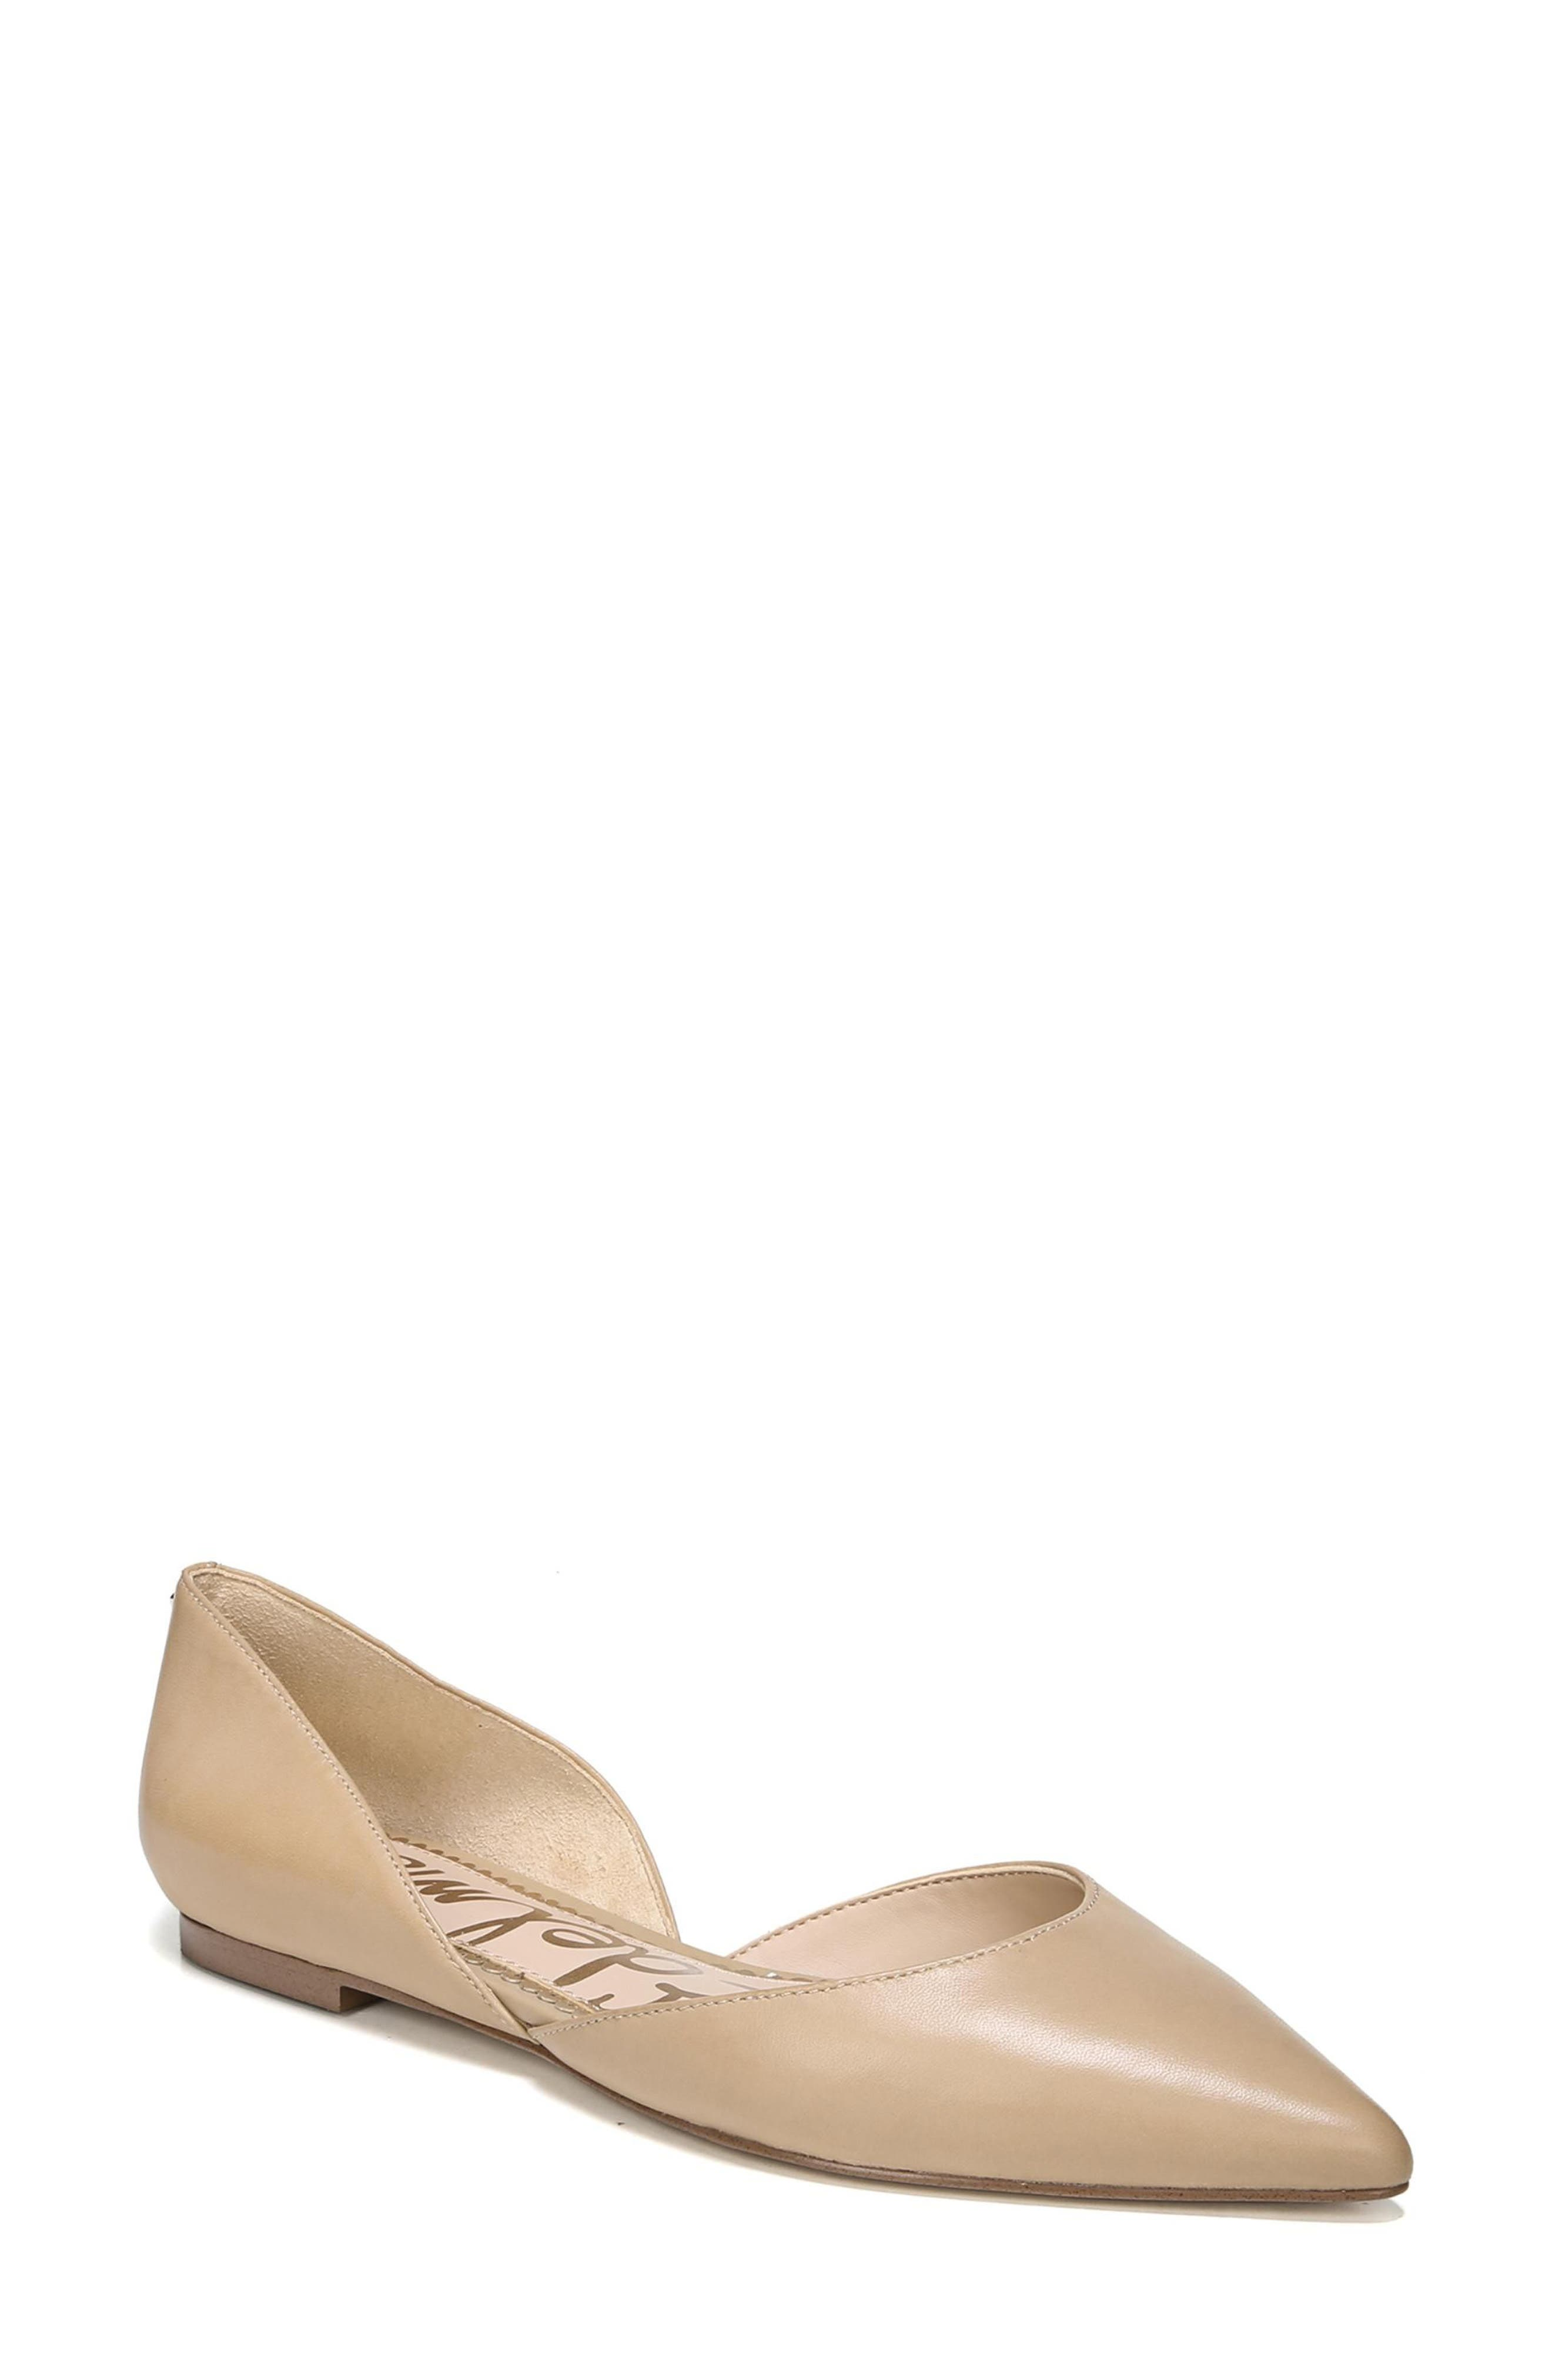 SAM EDELMAN, Rodney Pointy Toe d'Orsay Flat, Main thumbnail 1, color, CLASSIC NUDE LEATHER